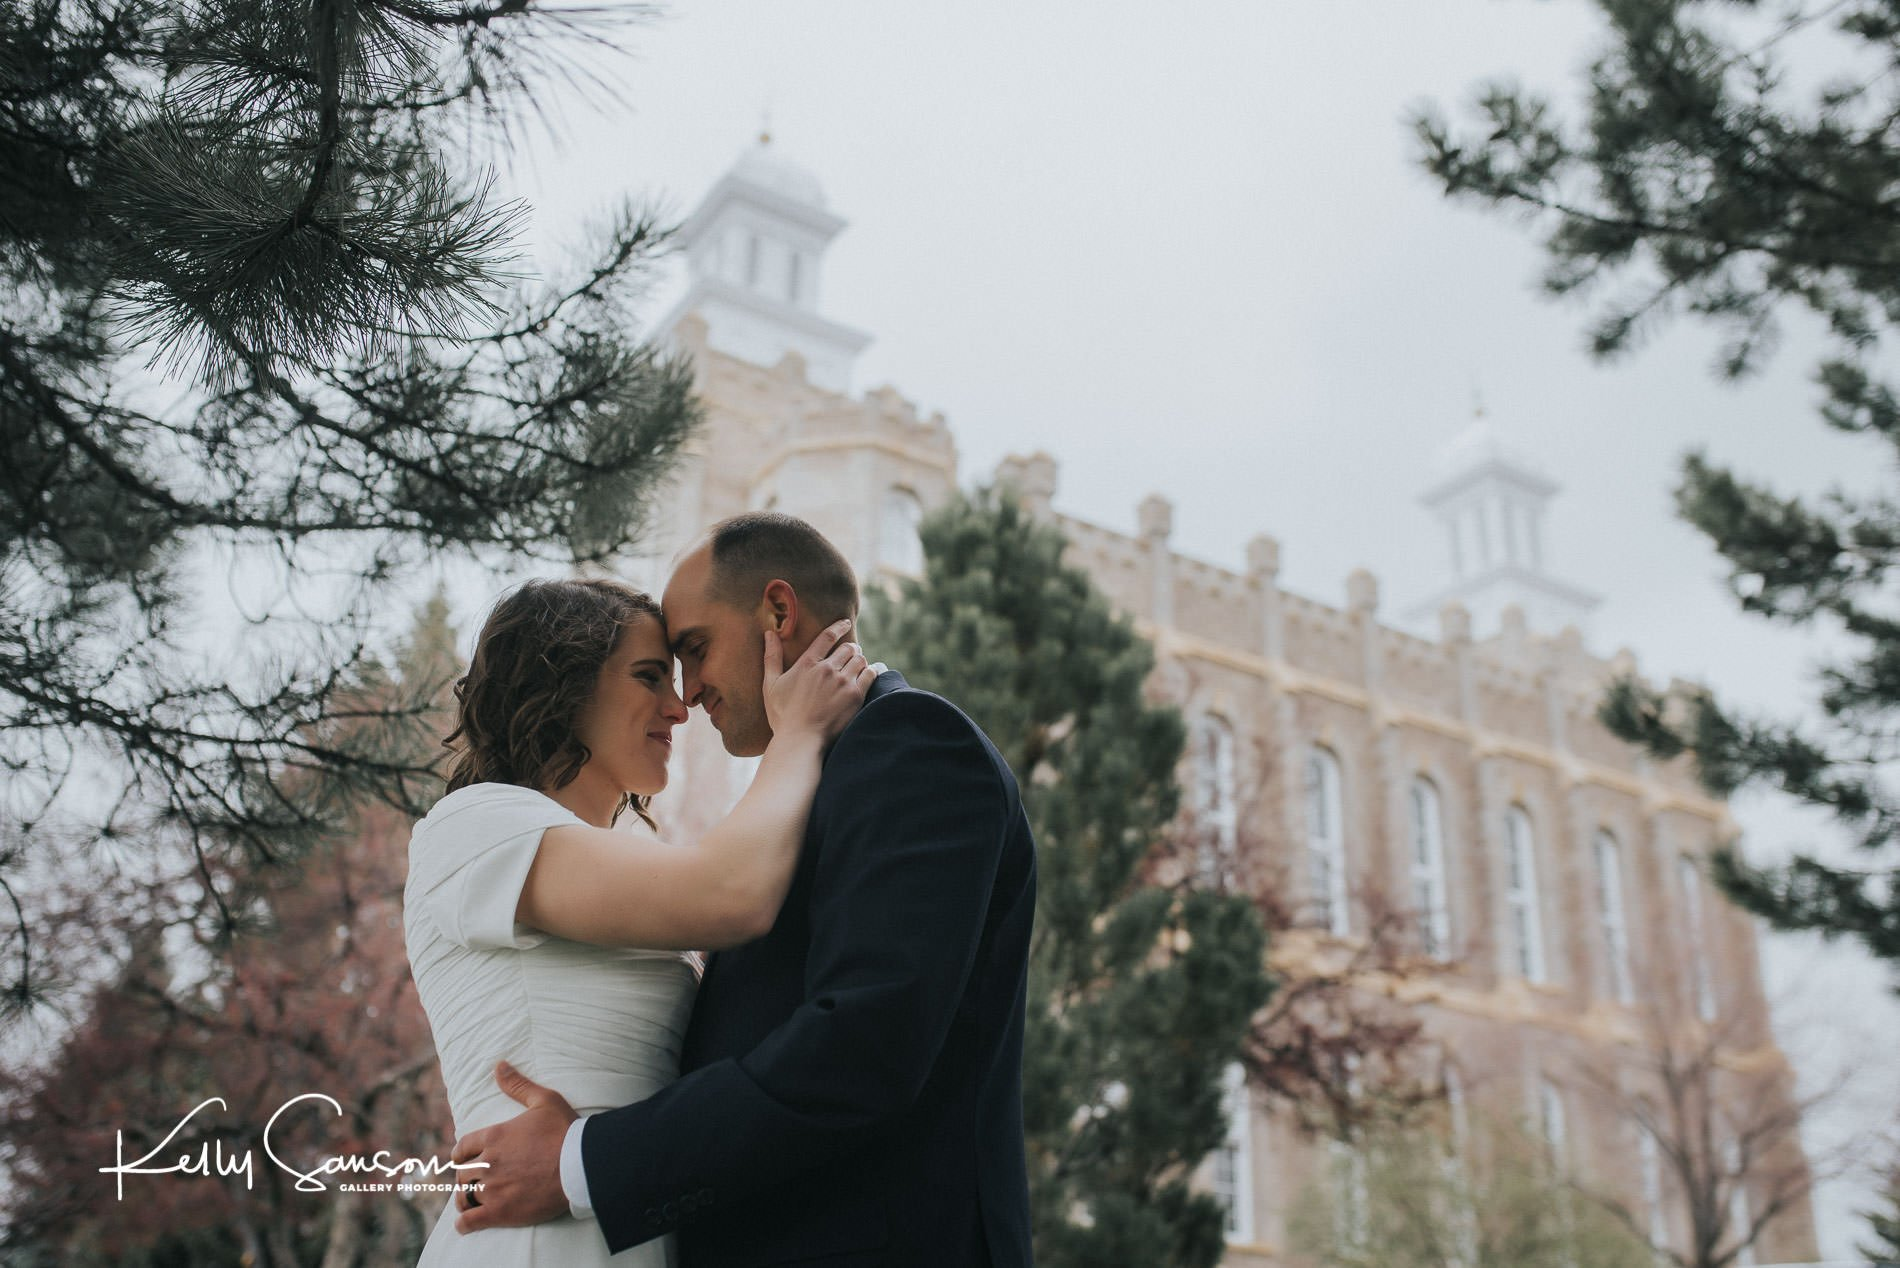 A bride and groom touching heads together and loving for Logan temple wedding photography.